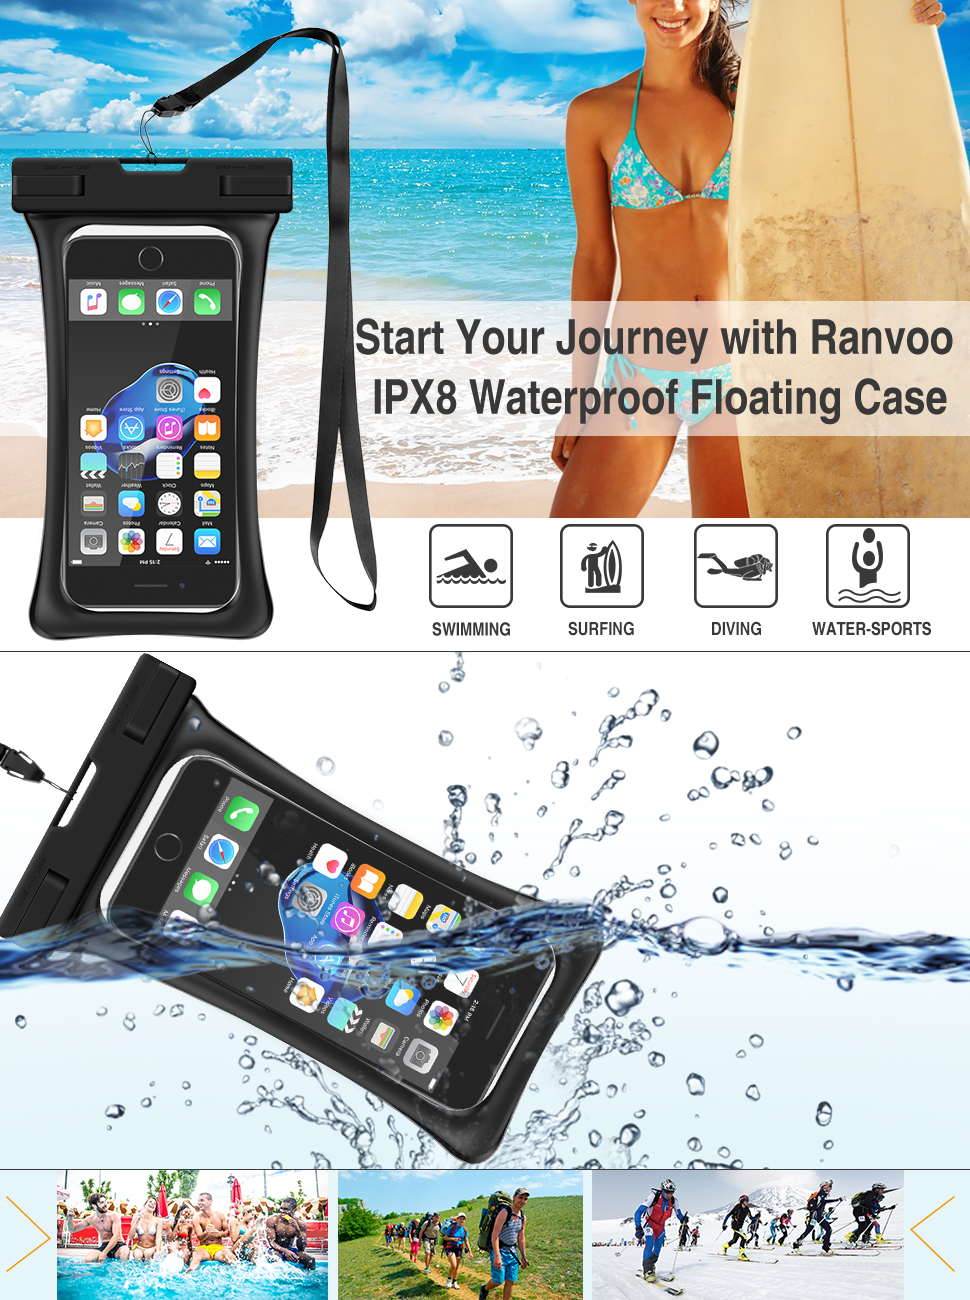 RANVOO [Floating] Waterproof Phone Pouch, Dry Bag Case for iPhone XS Max XR  X 8 Plus 7 Plus 6 6s Plus, Samsung Galaxy S9 Plus S8 Edge Note 8 7, LG G5